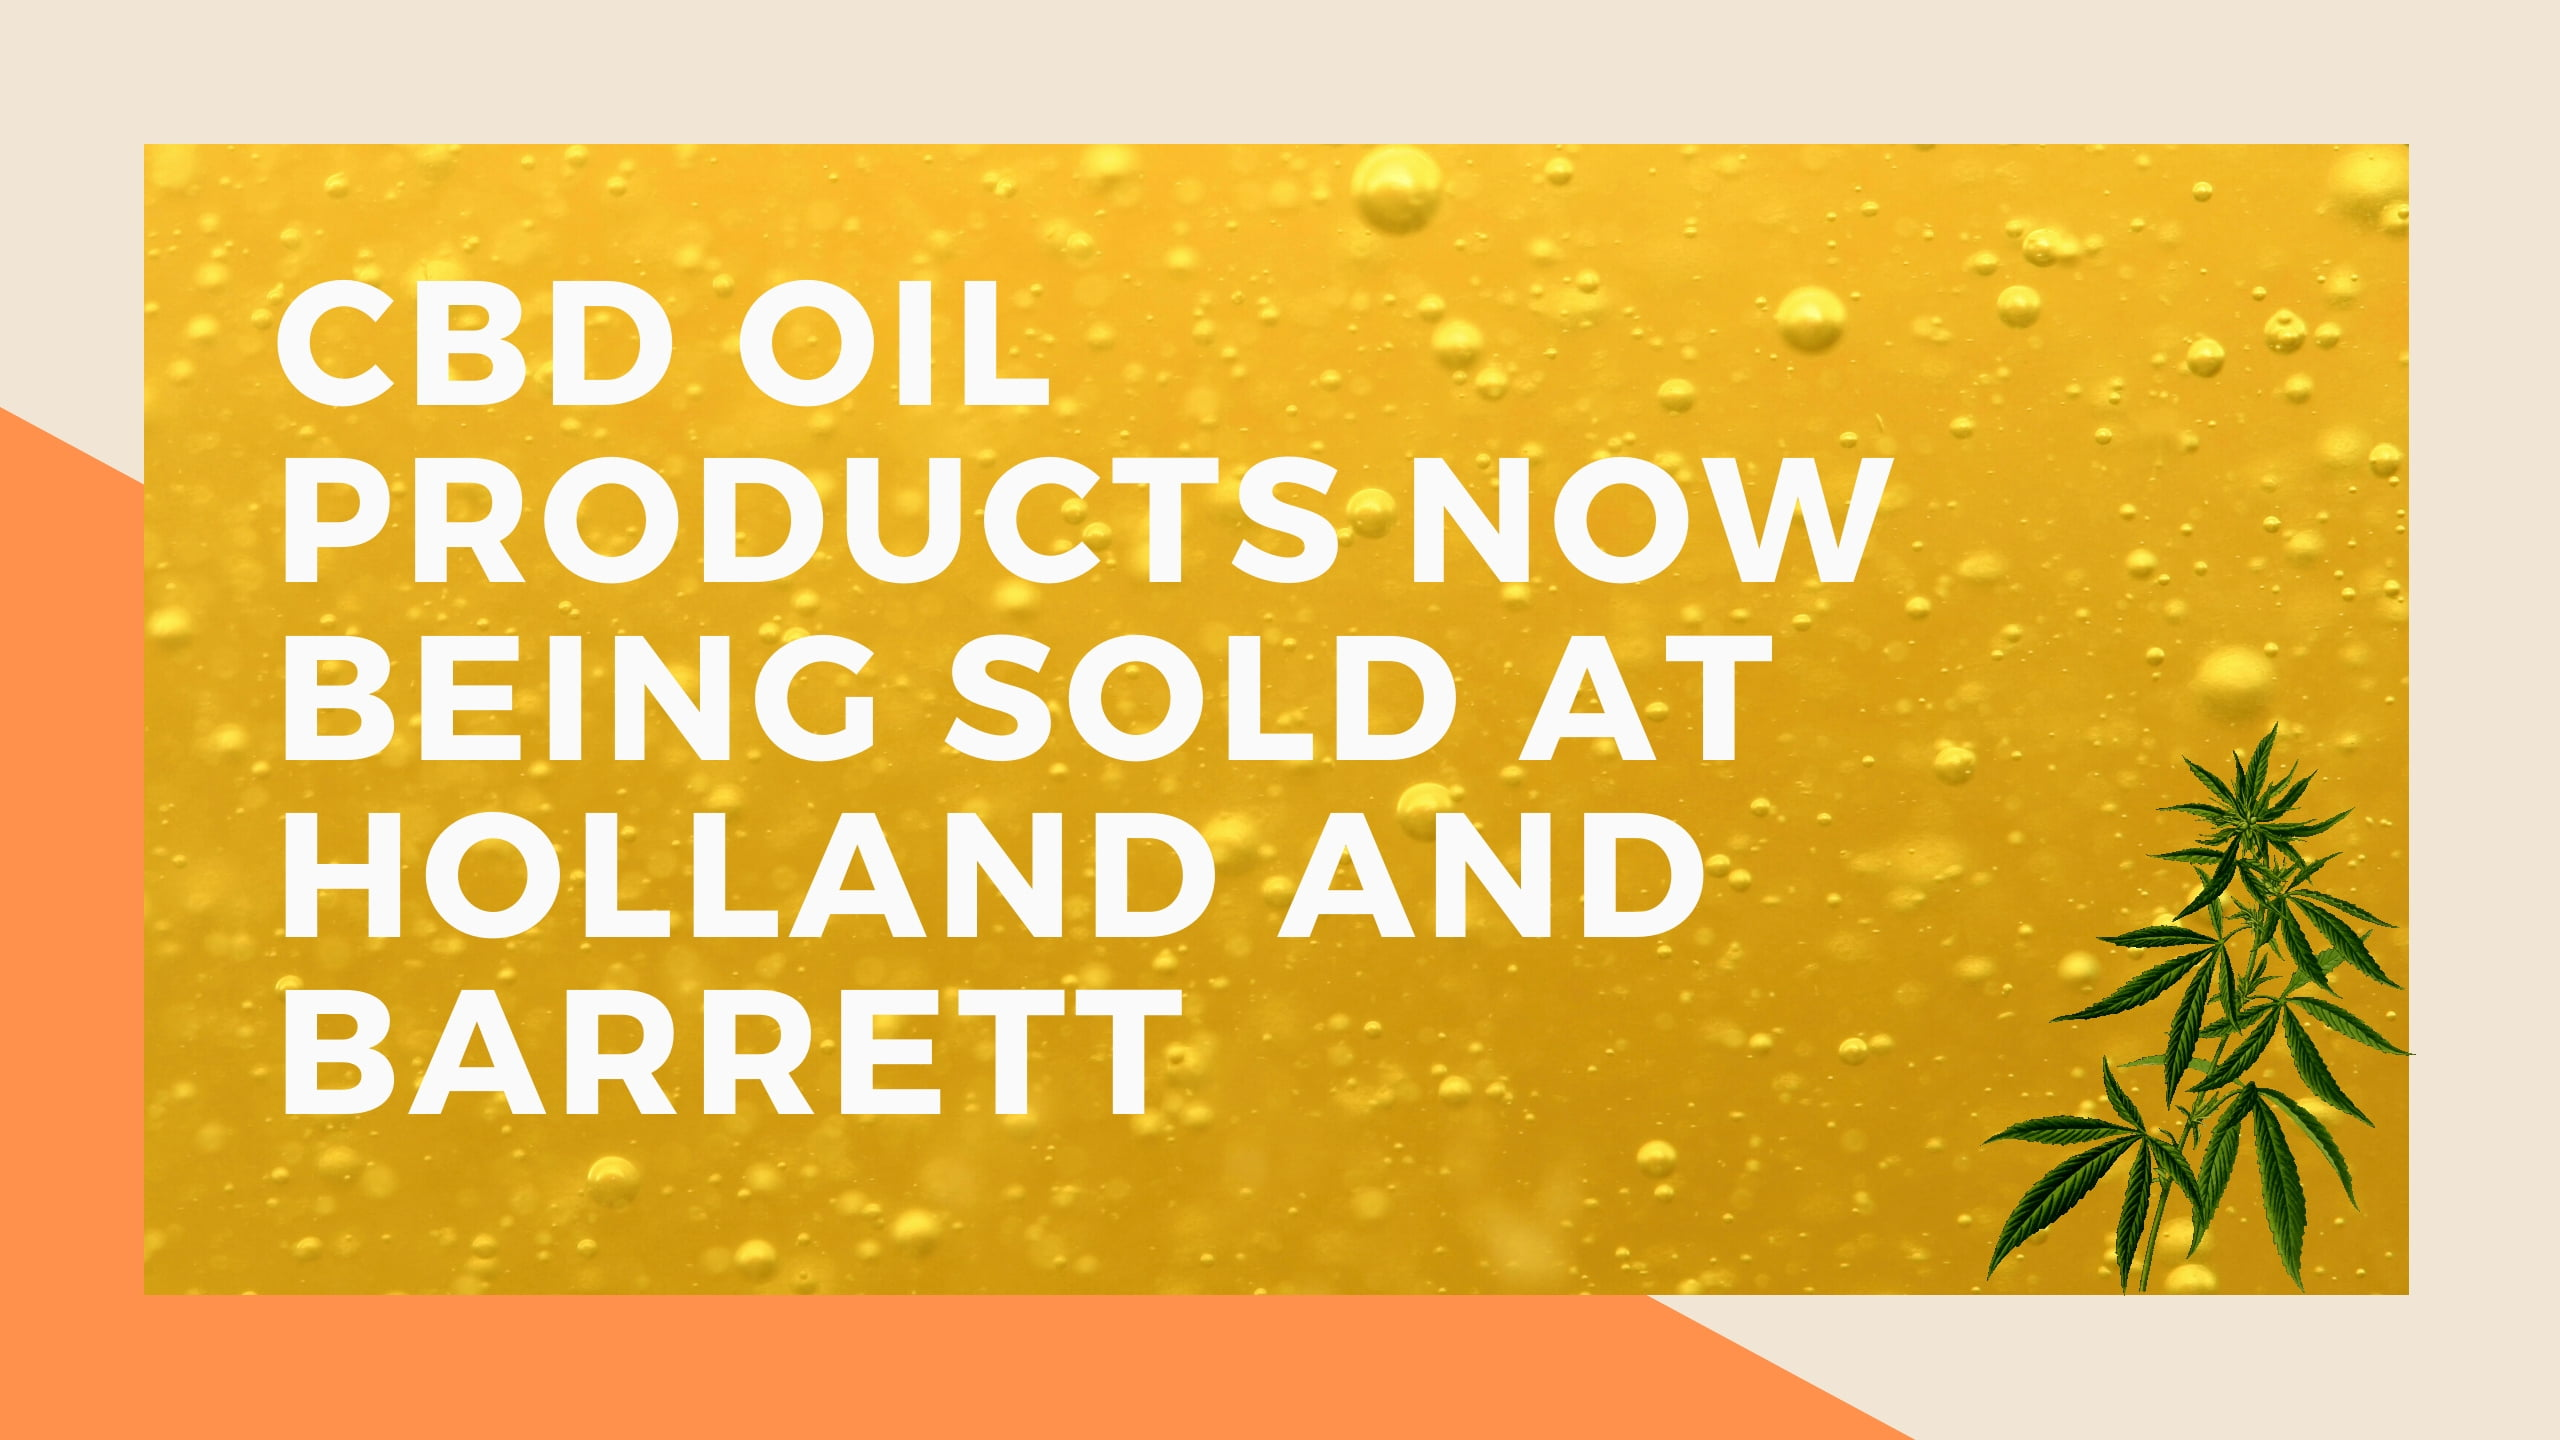 CBD oil products now being sold at Holland and Barrett